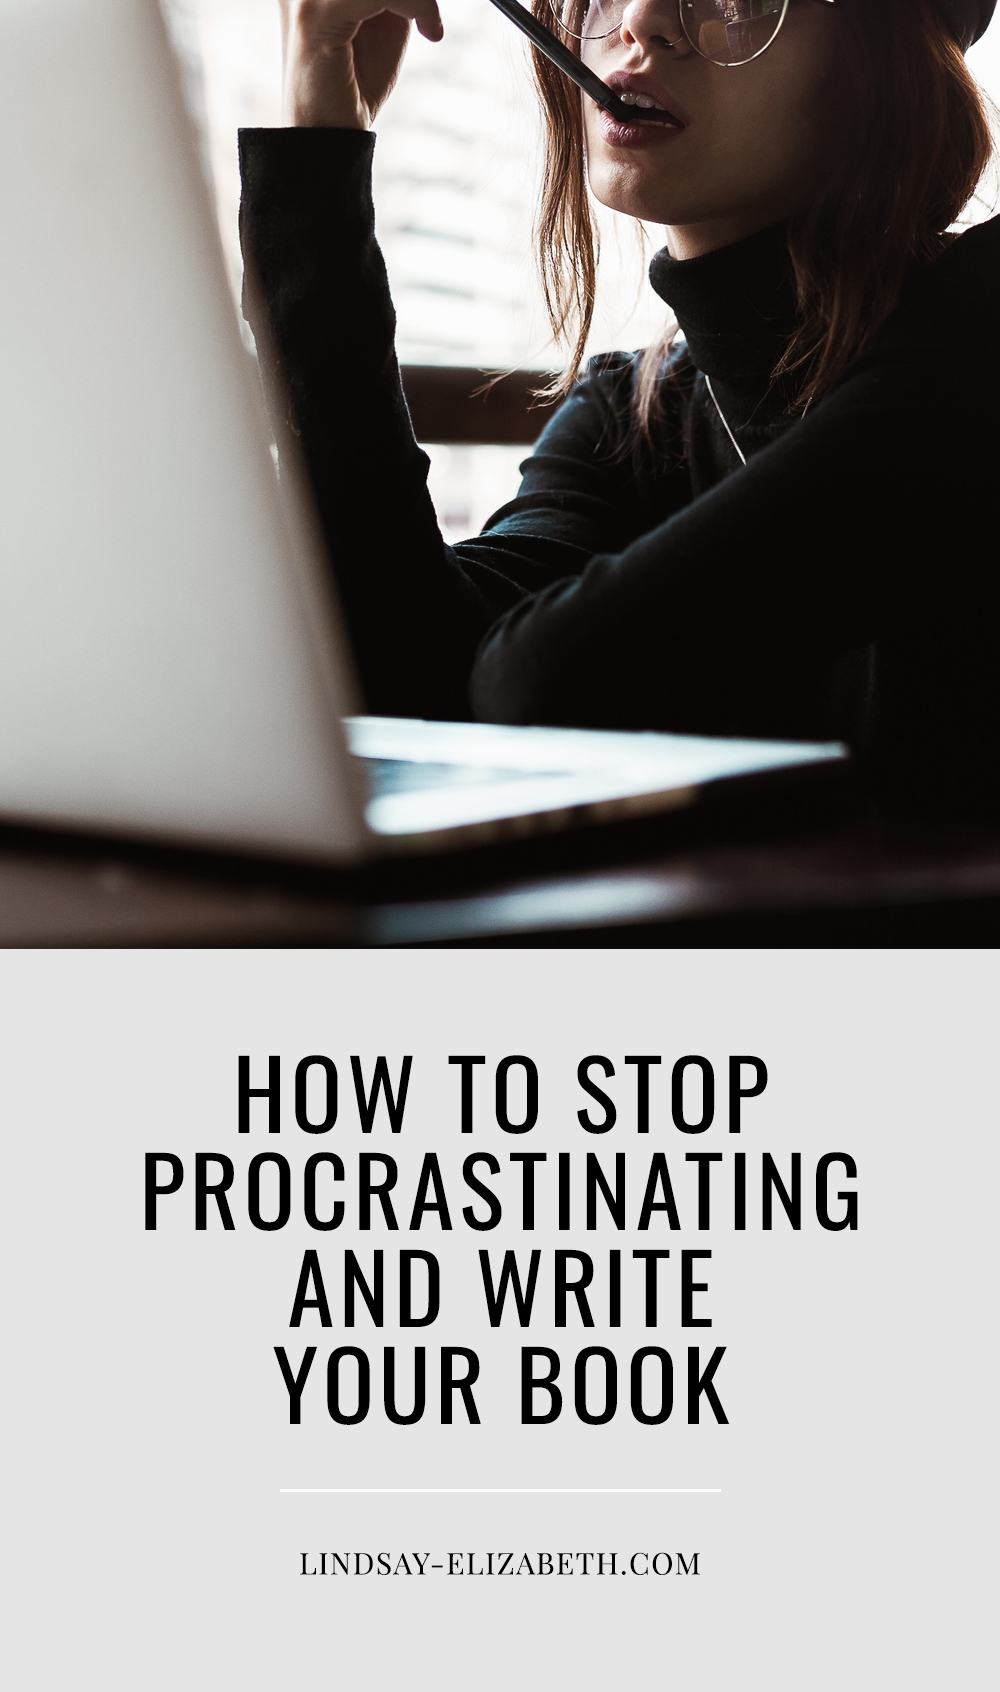 Feeling stuck trying to overcome writer procrastination? You're not alone. It's a common struggle and that struggle is real. As someone with first-hand experience of how frustrating it is, here are some tips on how to stop procrastinating on writing so you can finally finish your book. #writers #authors #writinganovel #writingabook #productivity